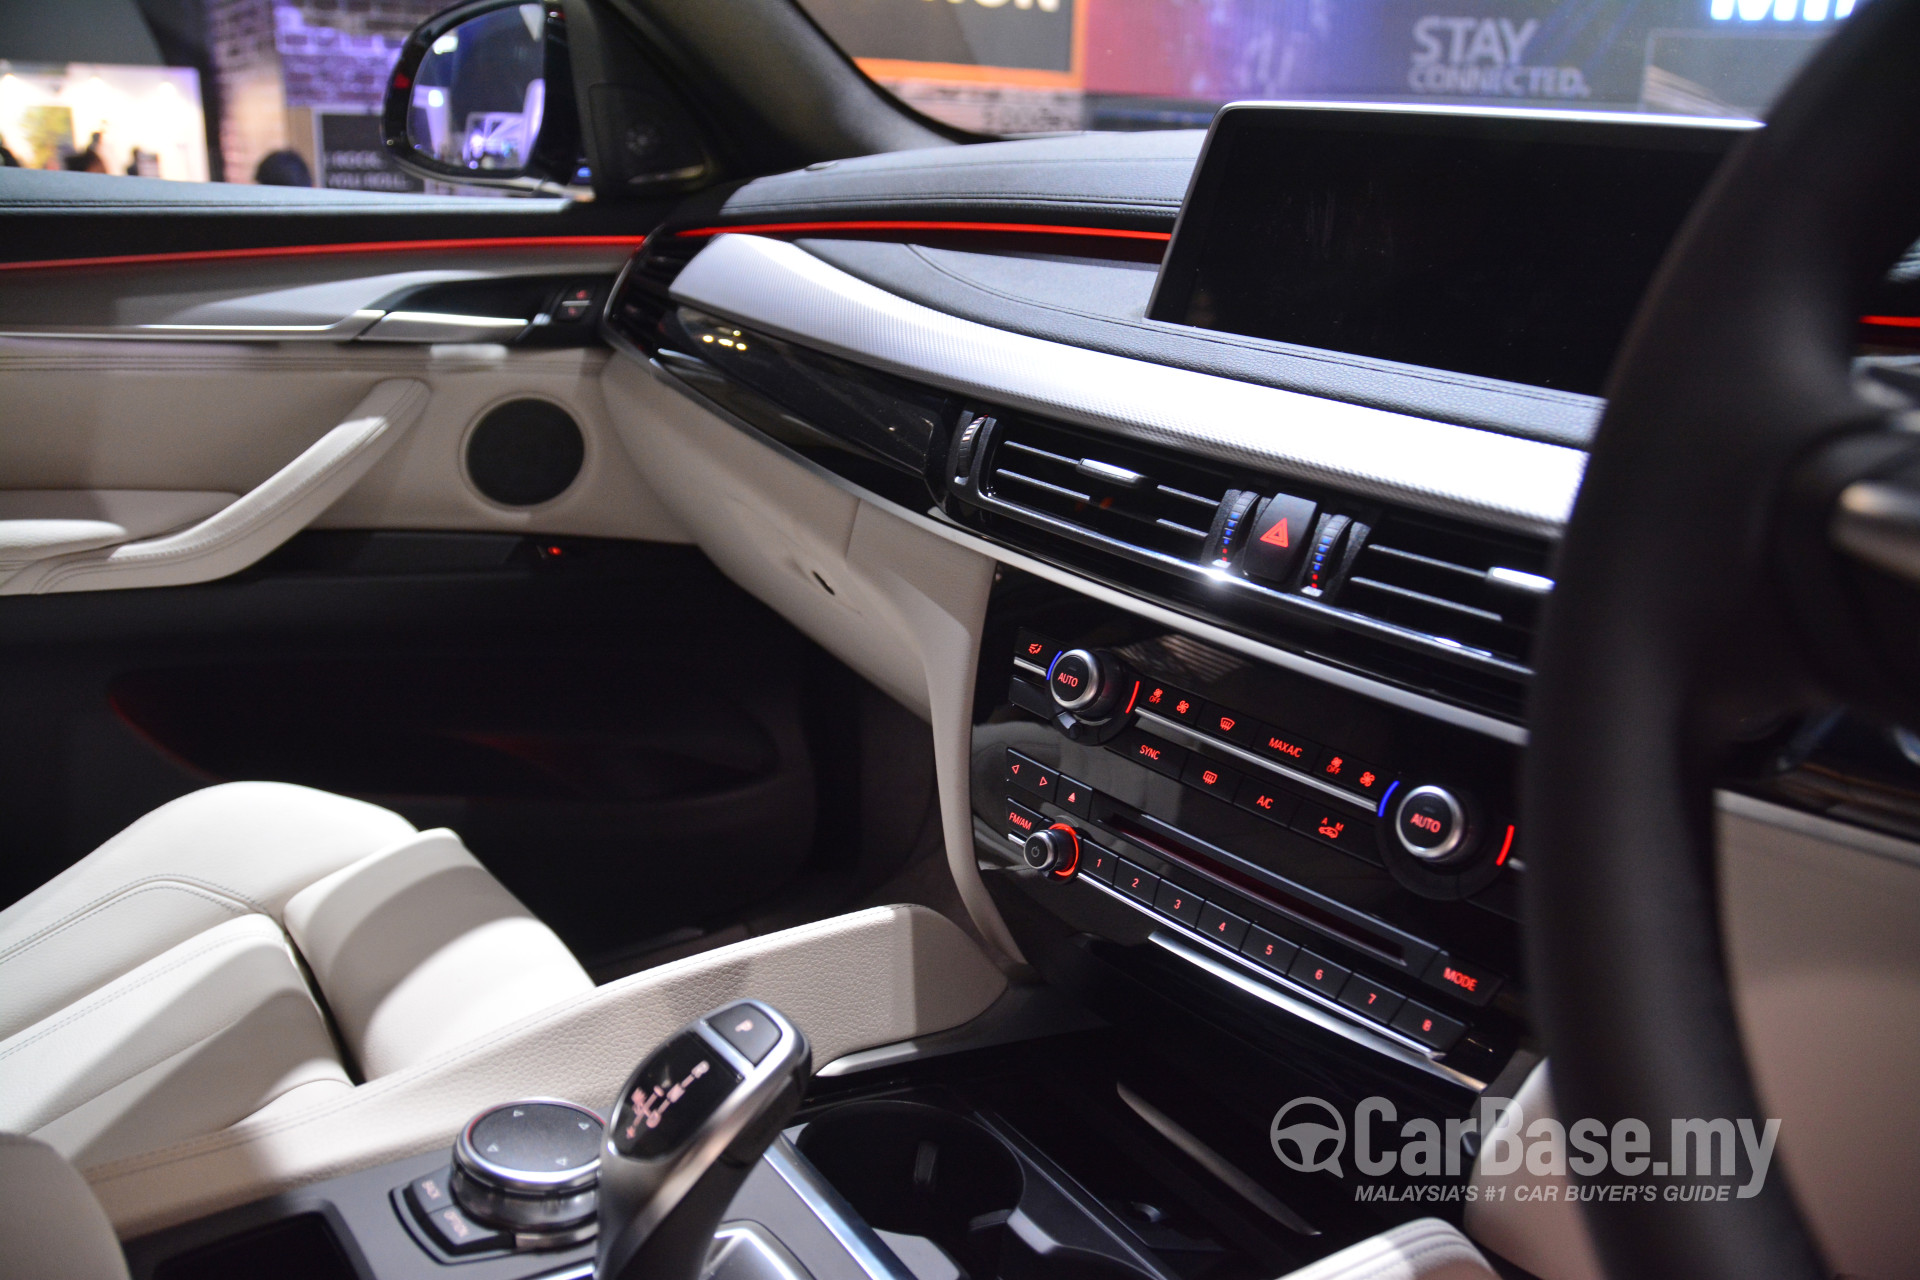 Bmw X6 F16 2015 Interior Image 20868 In Malaysia Reviews Specs